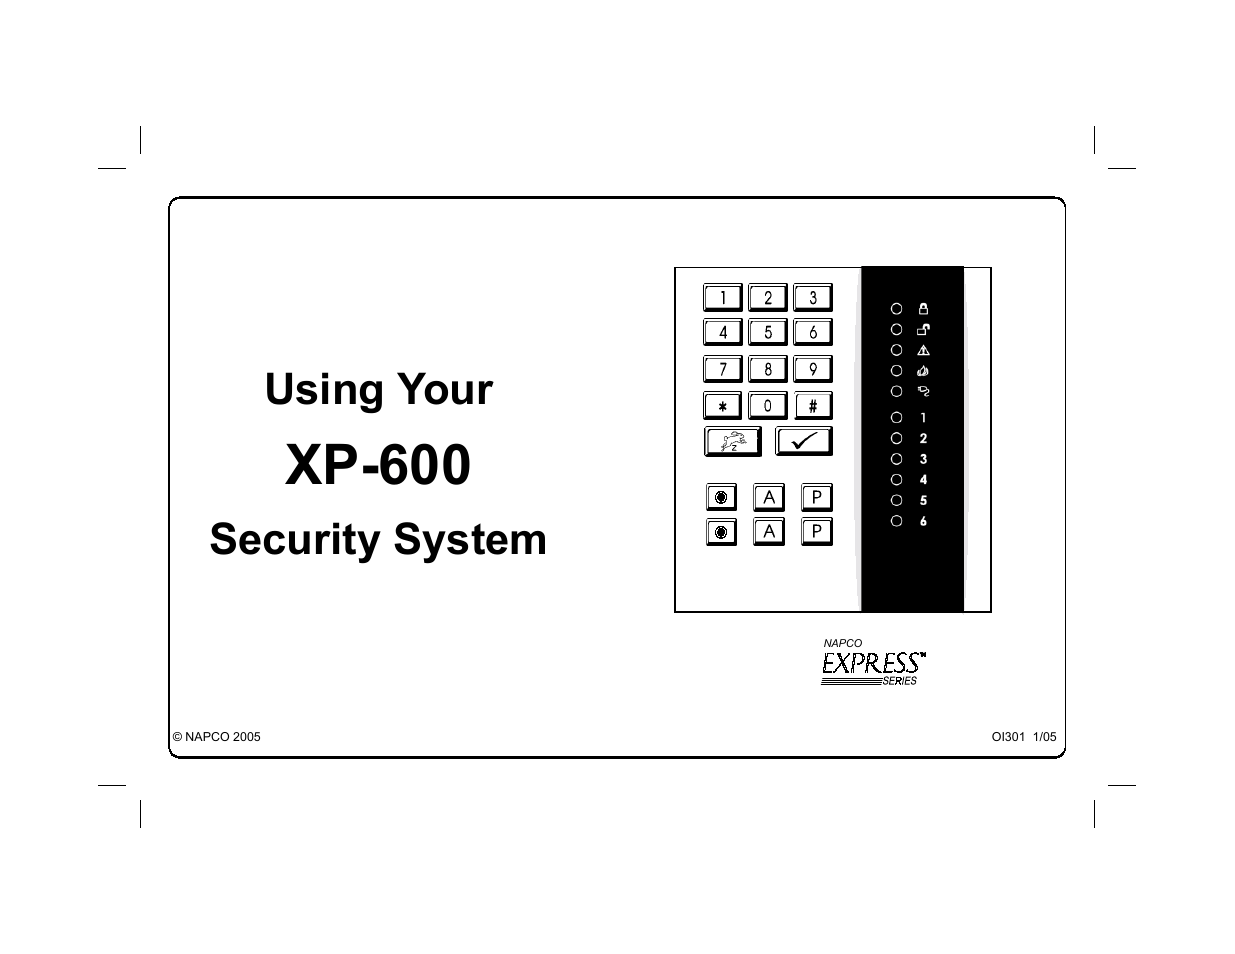 Napco Security Technologies NAPCO EXPRESS XP-600 User